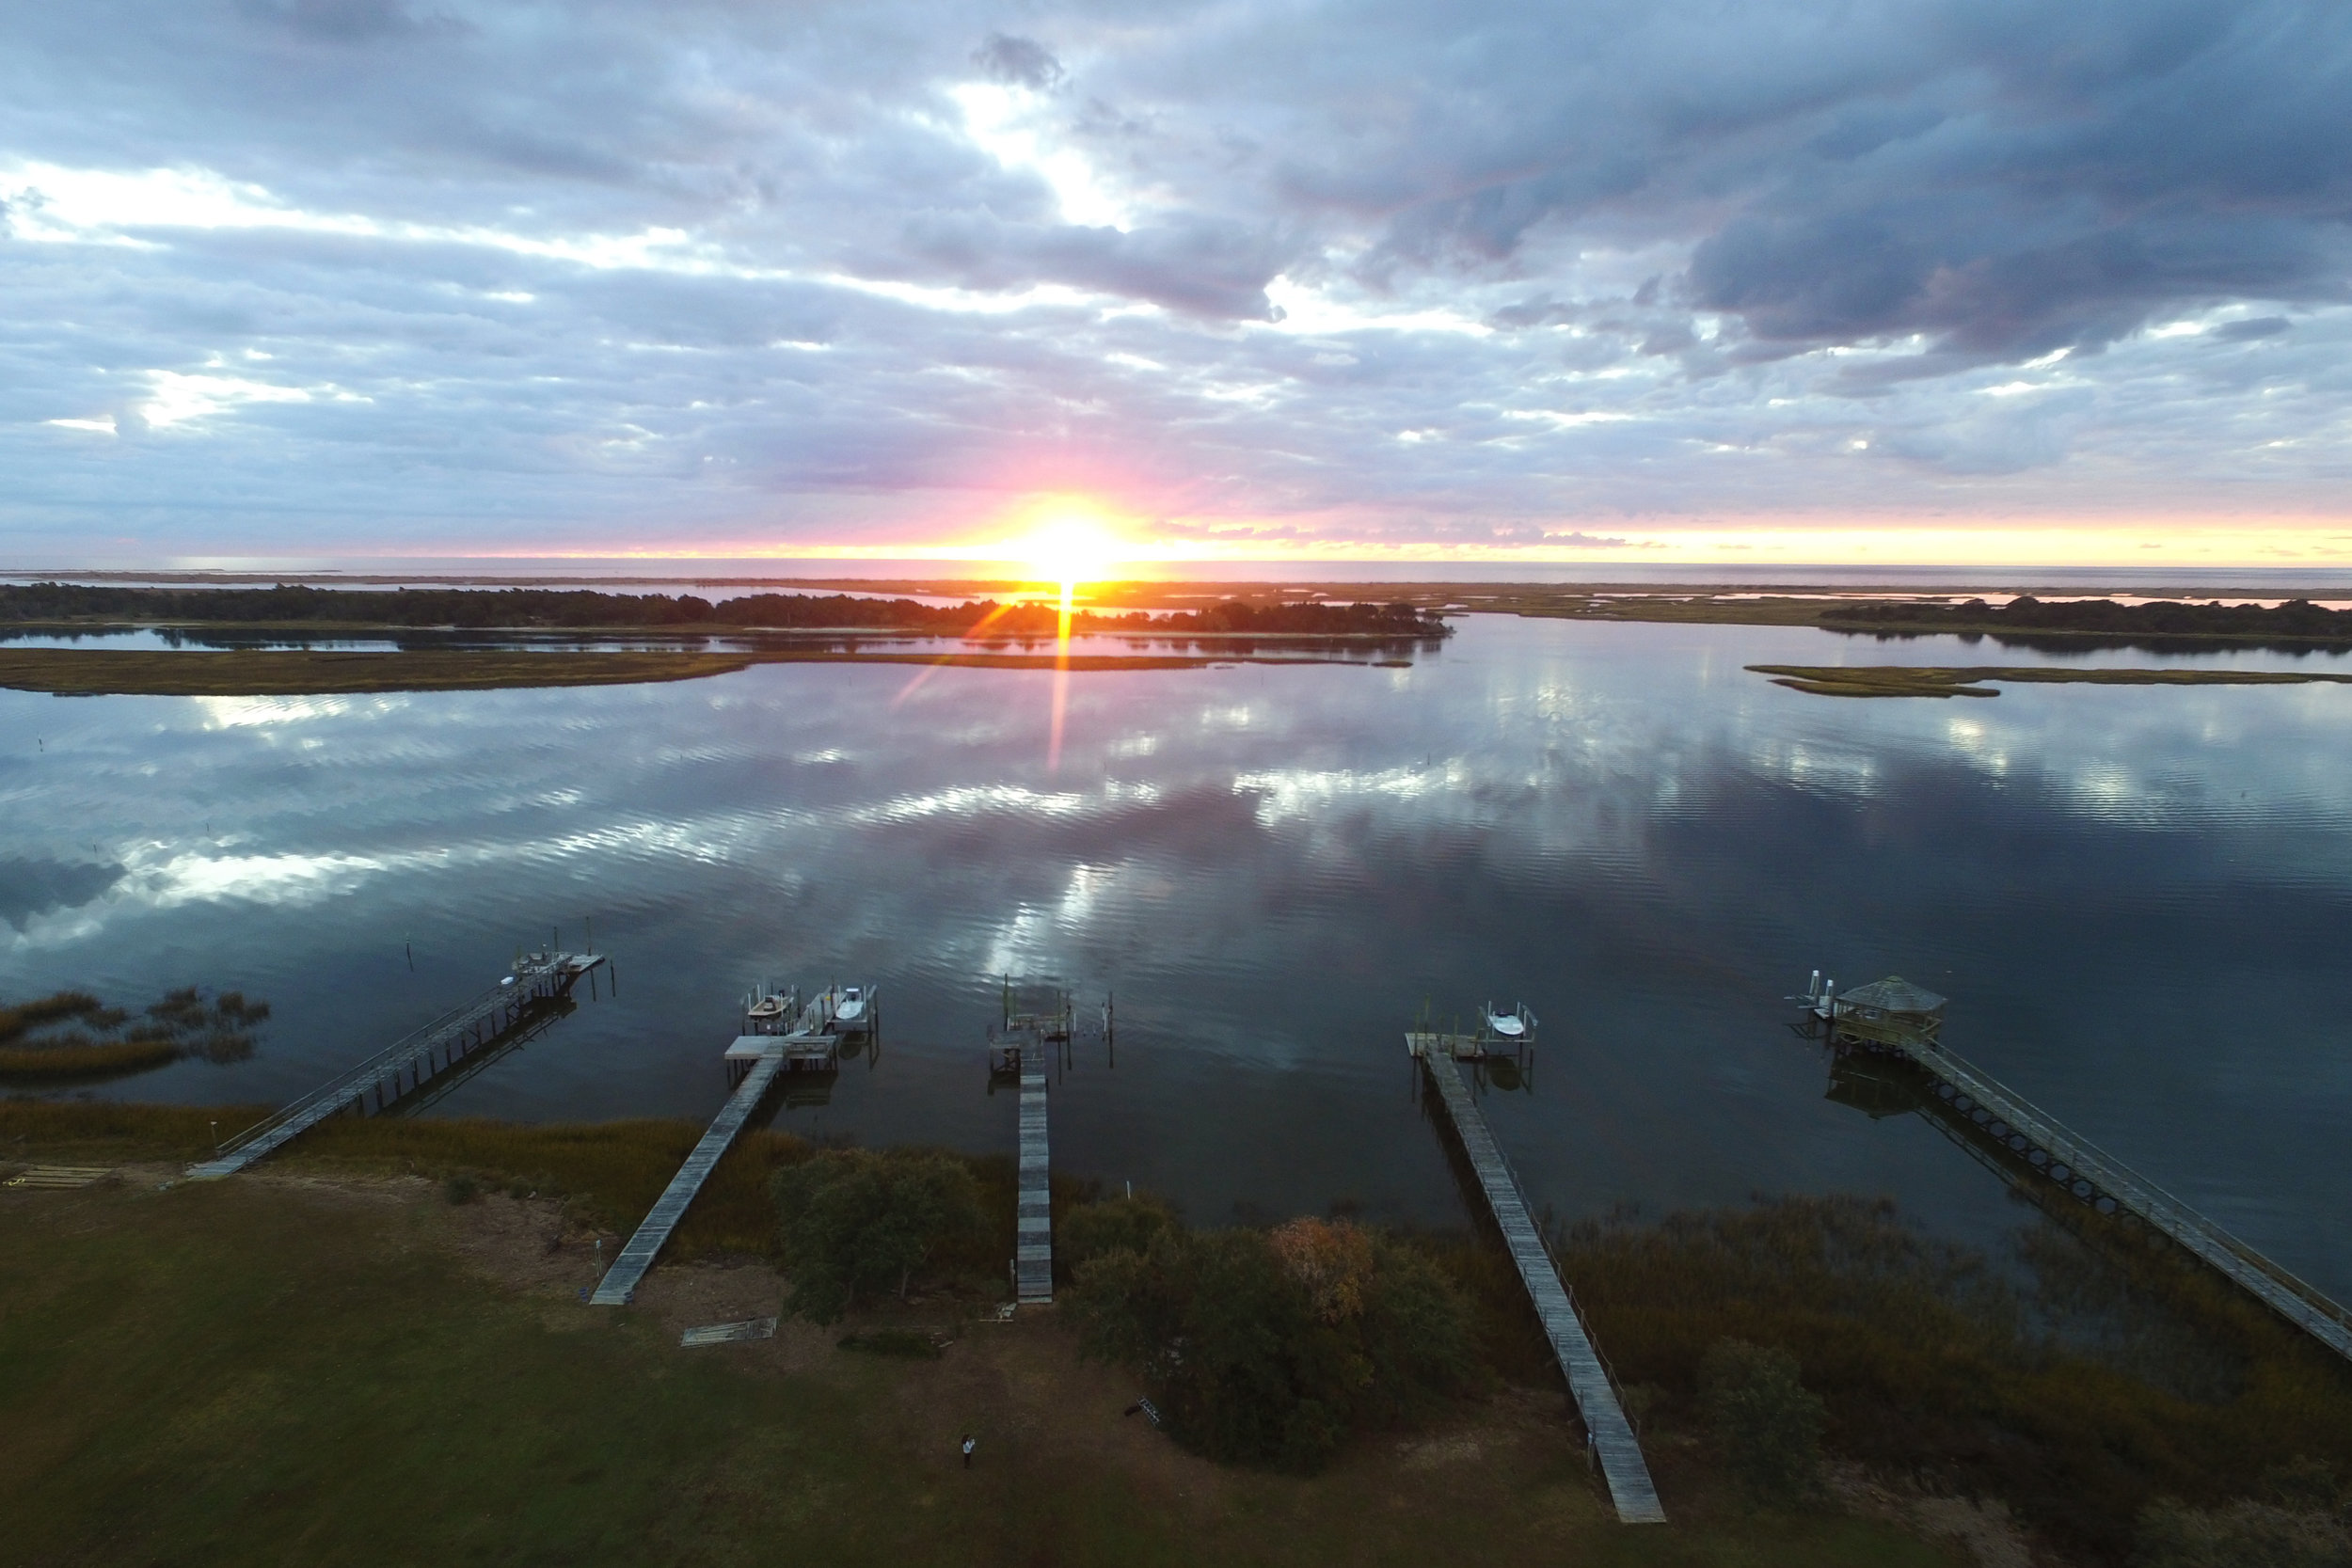 The sun rises over Masonboro Island and Masonboro Sound in Wilmington, NC. On the other side of the marsh and barrier island is the Atlantic Ocean.